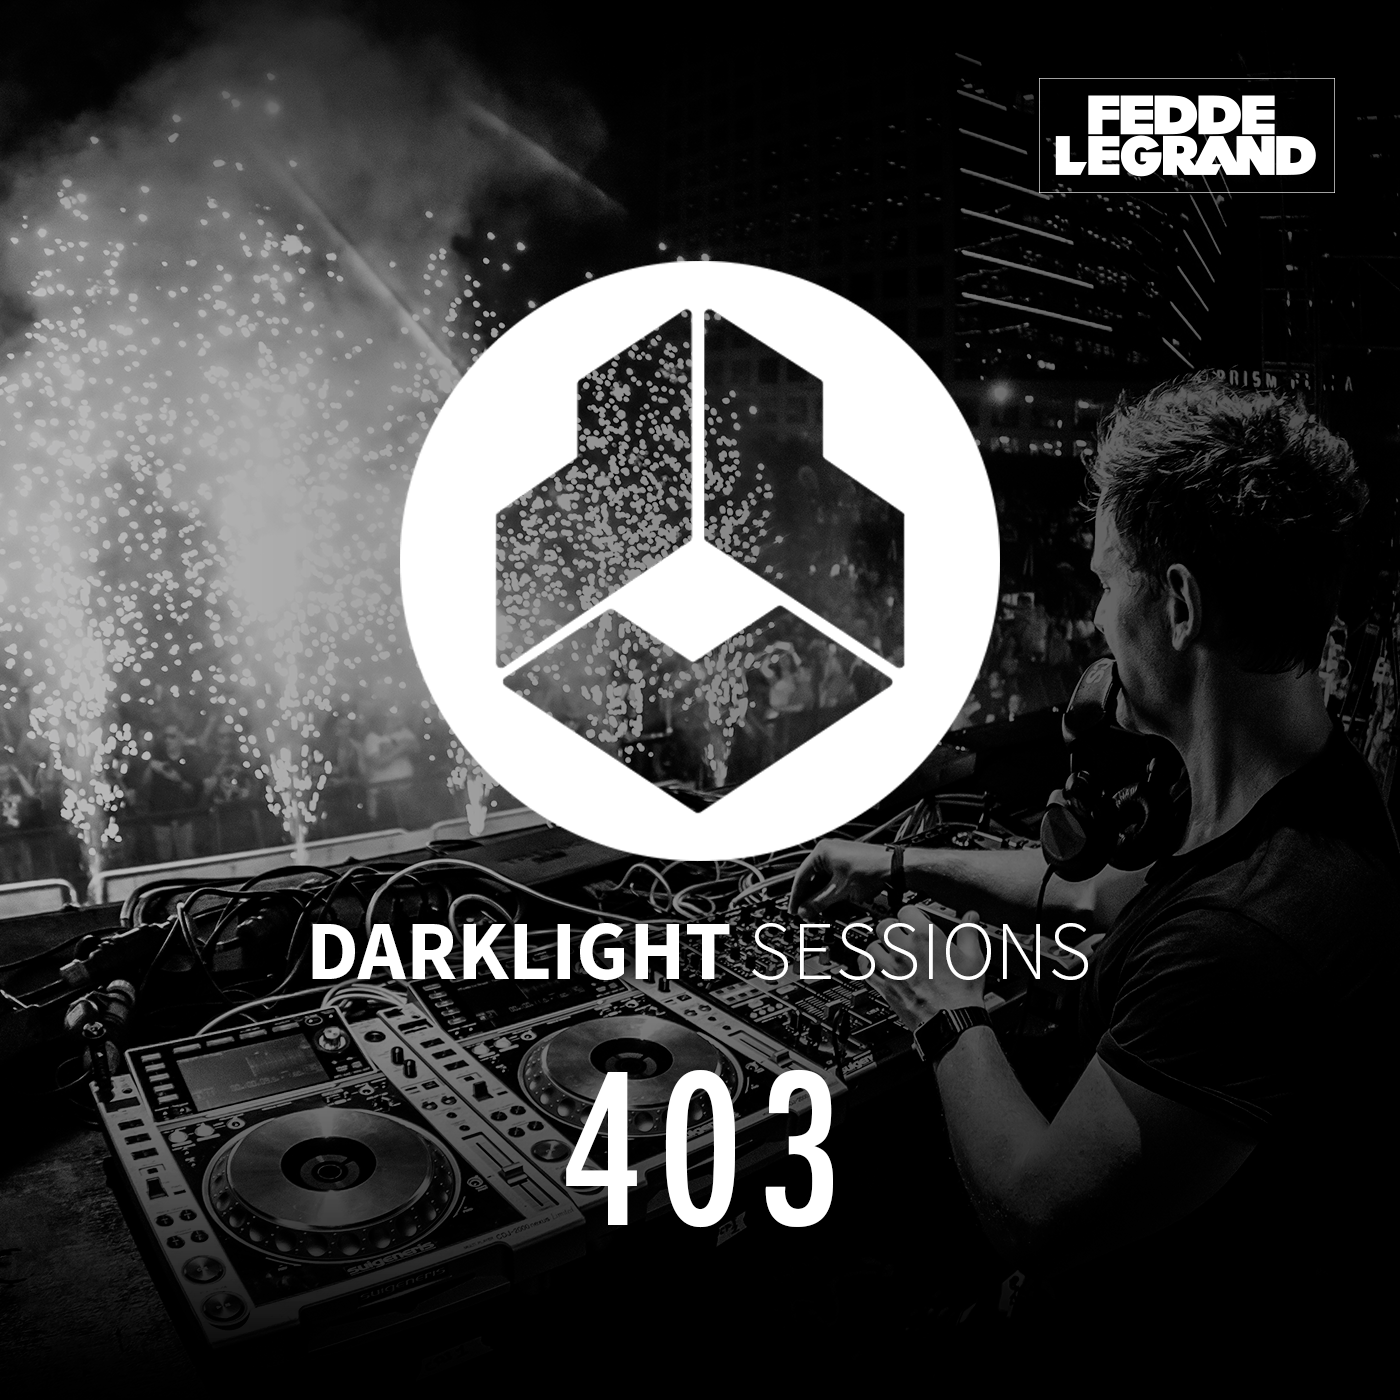 Darklight Sessions 403